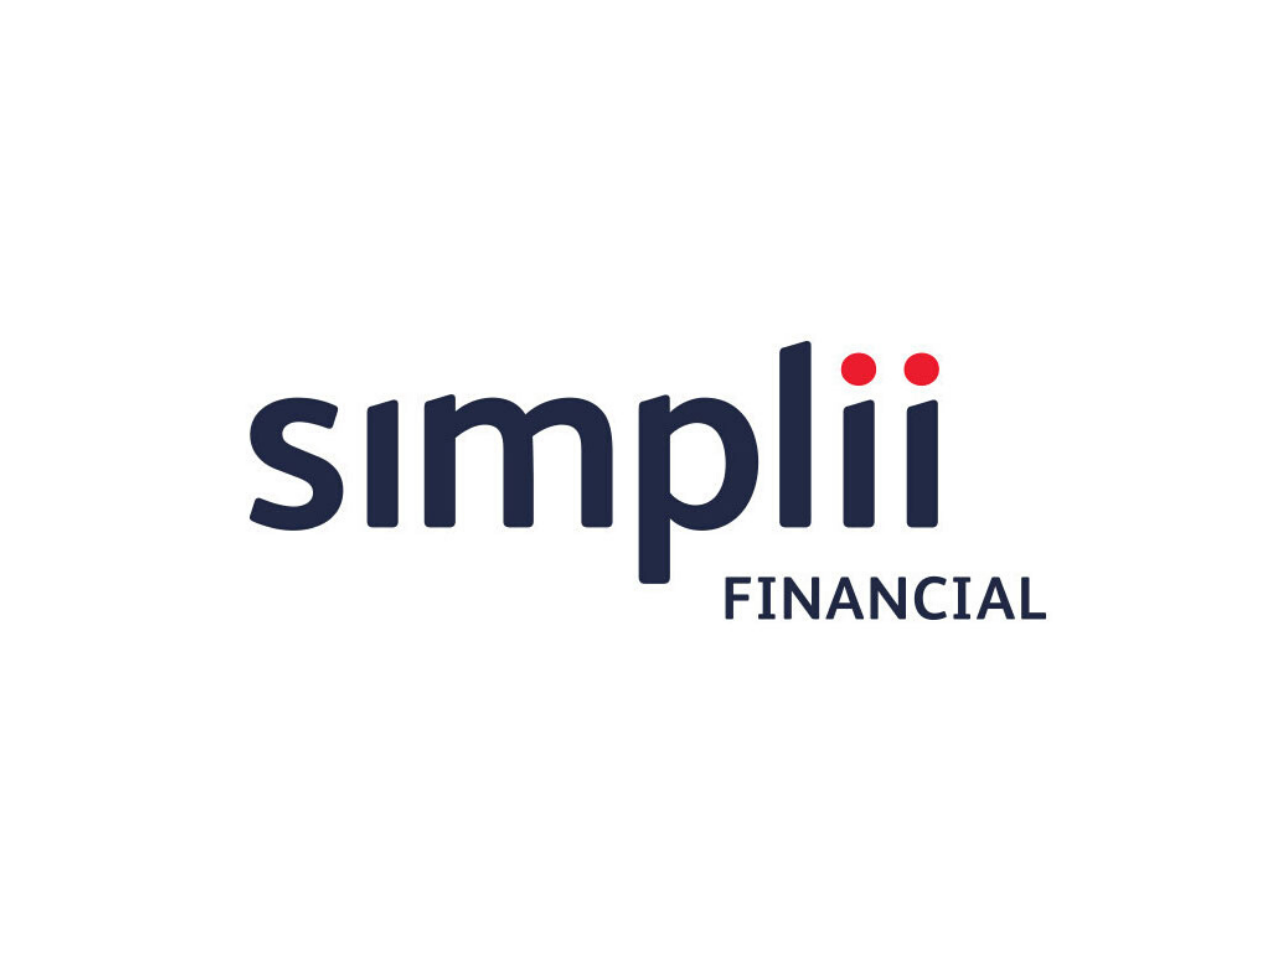 Simplii Financial Review